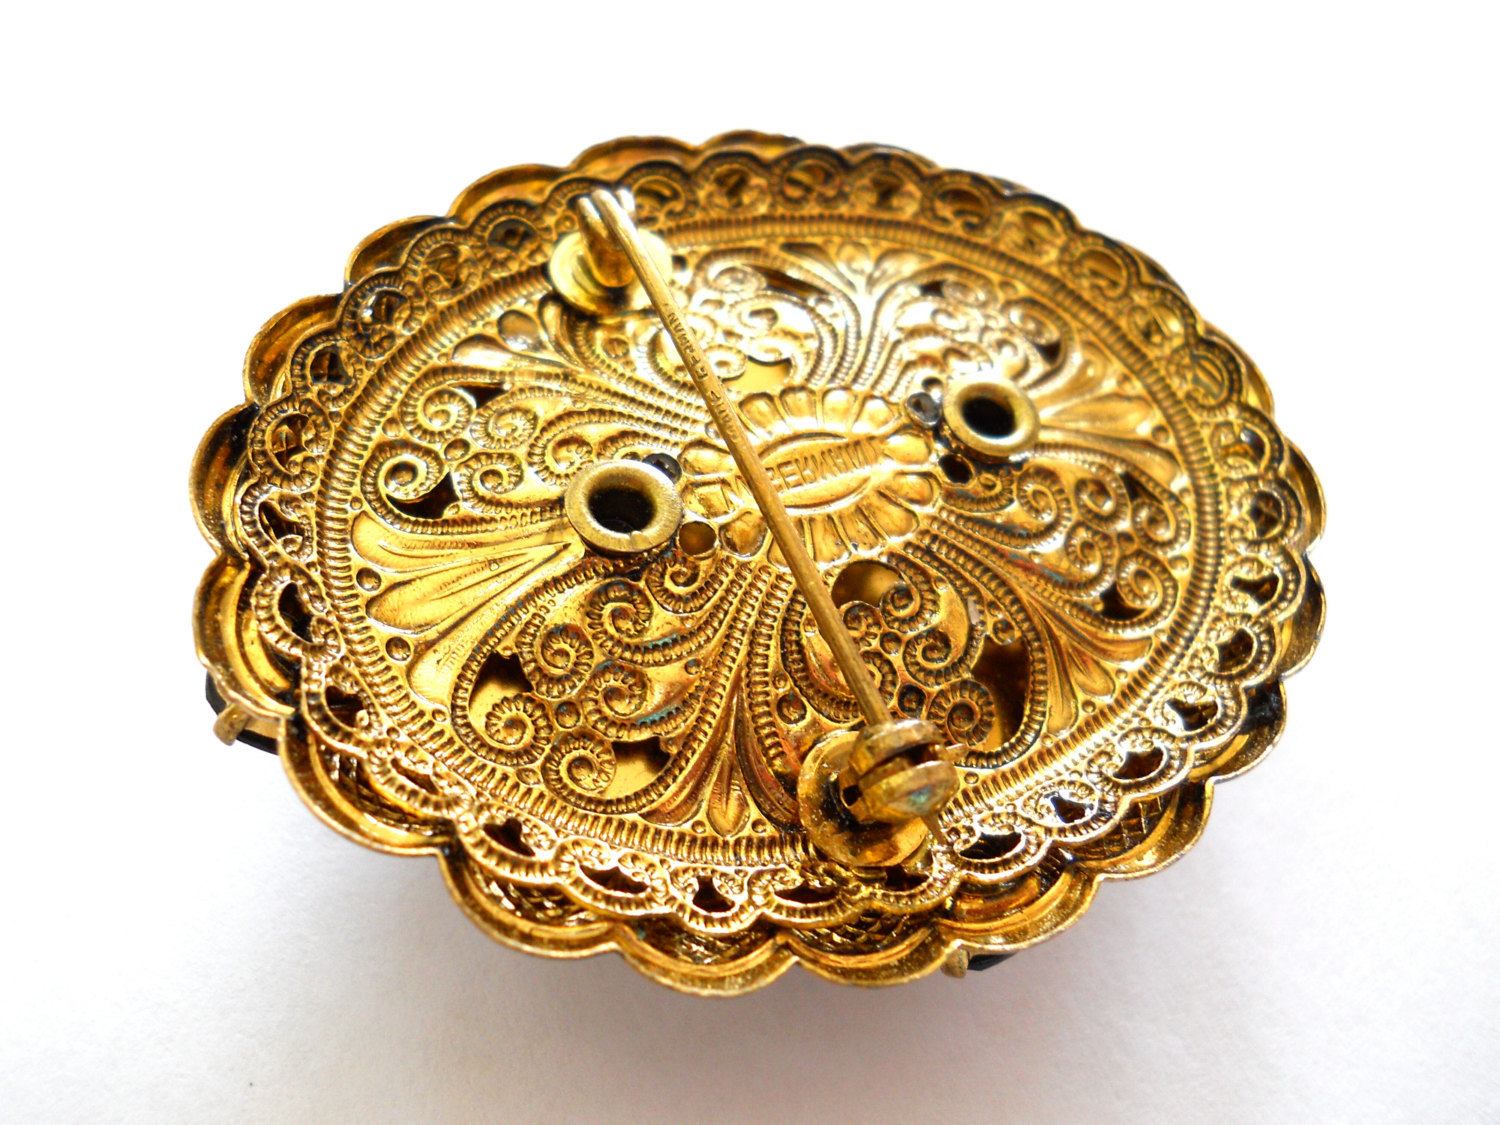 Hematite Cameo Brooch Pin Signed M Germany Faux Pearls Gold Filigree Vintage